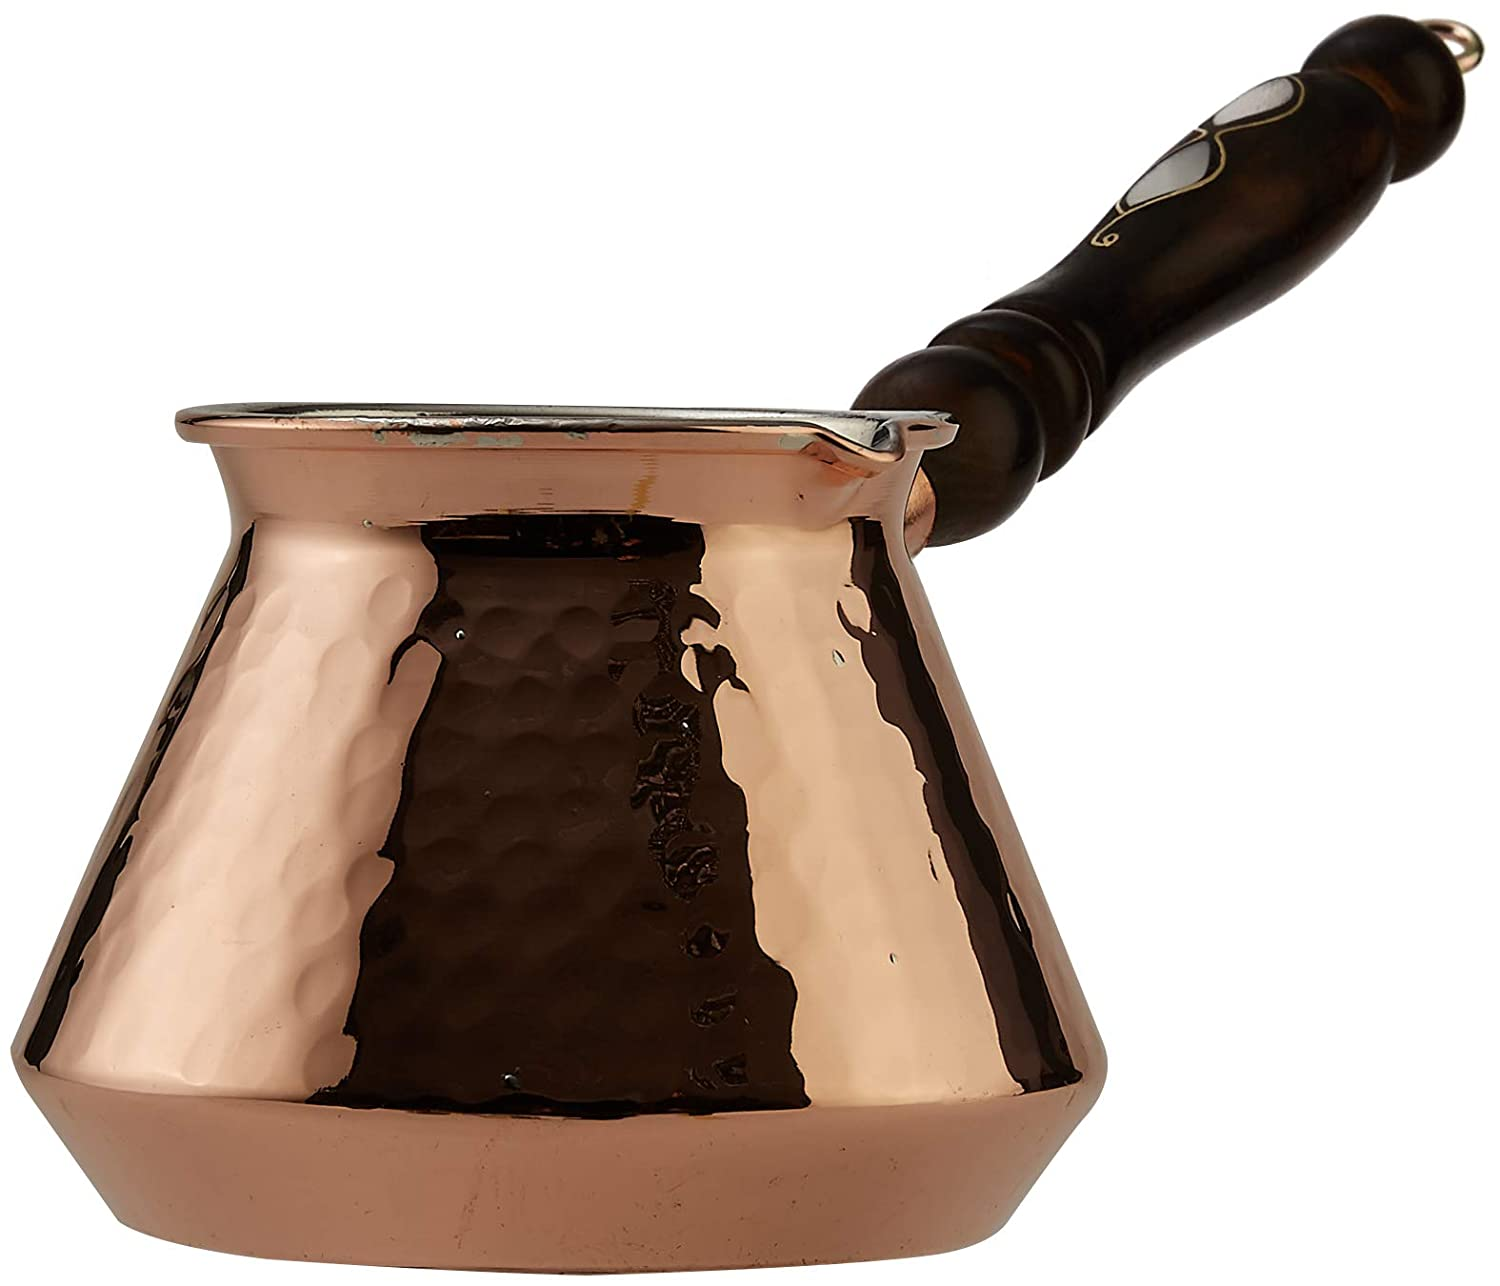 CopperBull THICKEST Solid Hammered Copper Turkish Greek Arabic Coffee Pot Stovetop Coffee Maker Cezve Ibrik Briki with Wooden Handle, Thick 2 mm (Xlarge - 15 Oz)